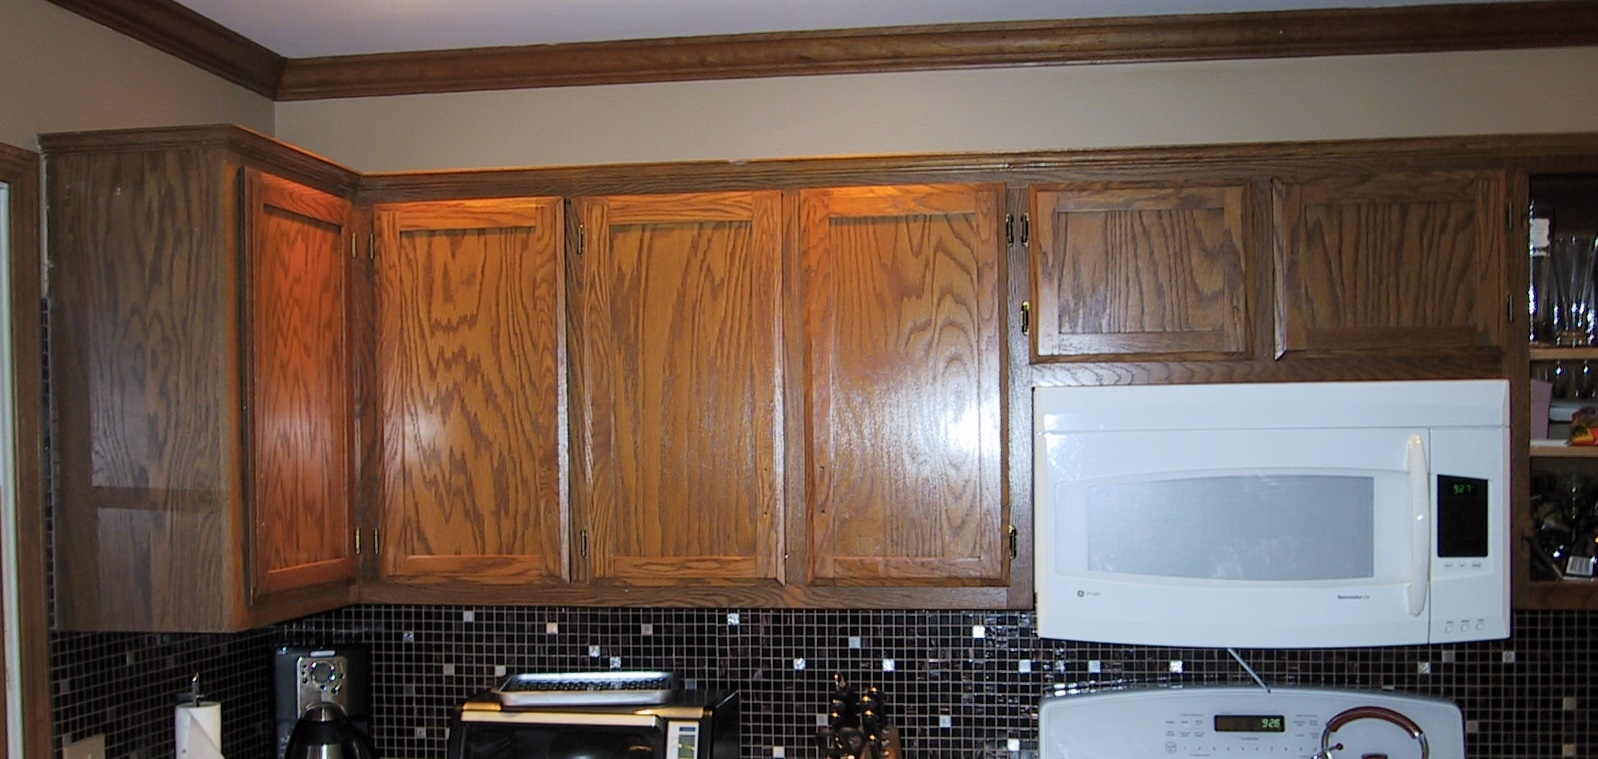 Basic Oak Builderu0027s Grade Cabinets That We Will Be Refacing In Solid Cherry